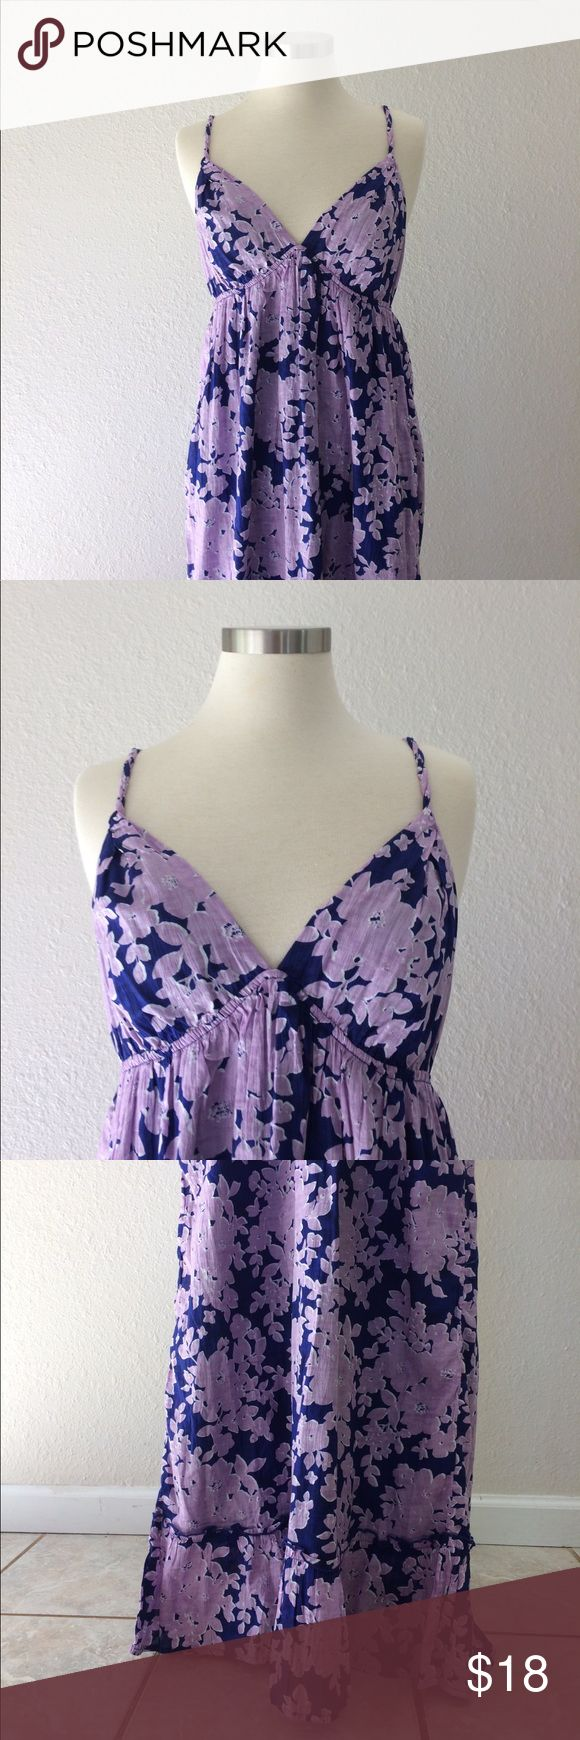 Long Purple sundress Lovely fully lined light weight fabric dress. Adorable twisted straps, flounce at hem. Soft fabric. Old Navy Dresses Maxi